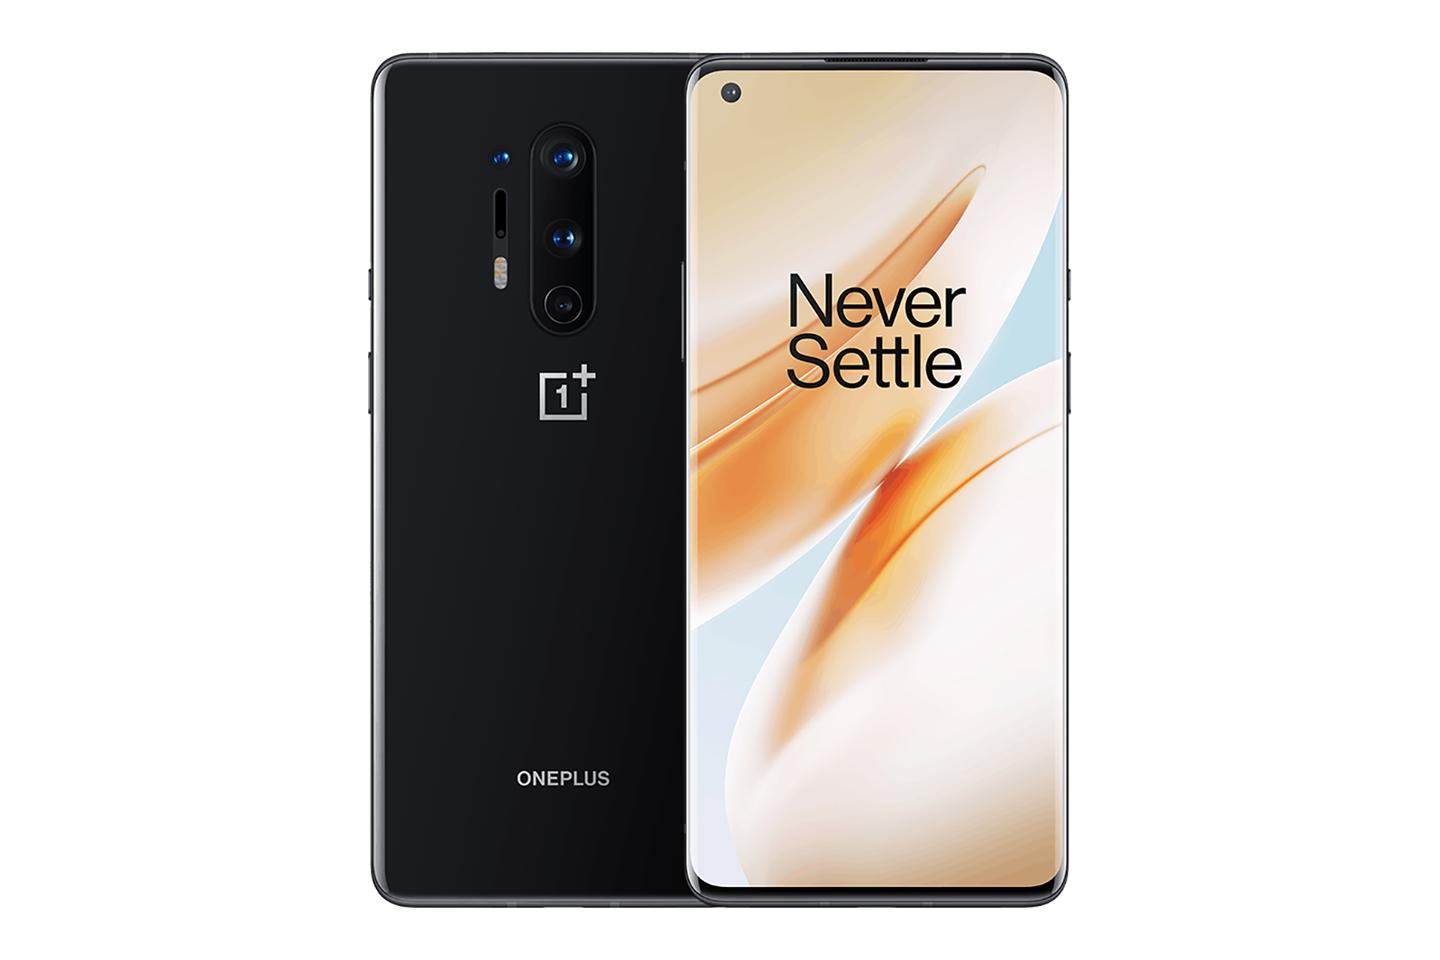 The OnePlus 8 Pro is another stellar flagship from OnePlus